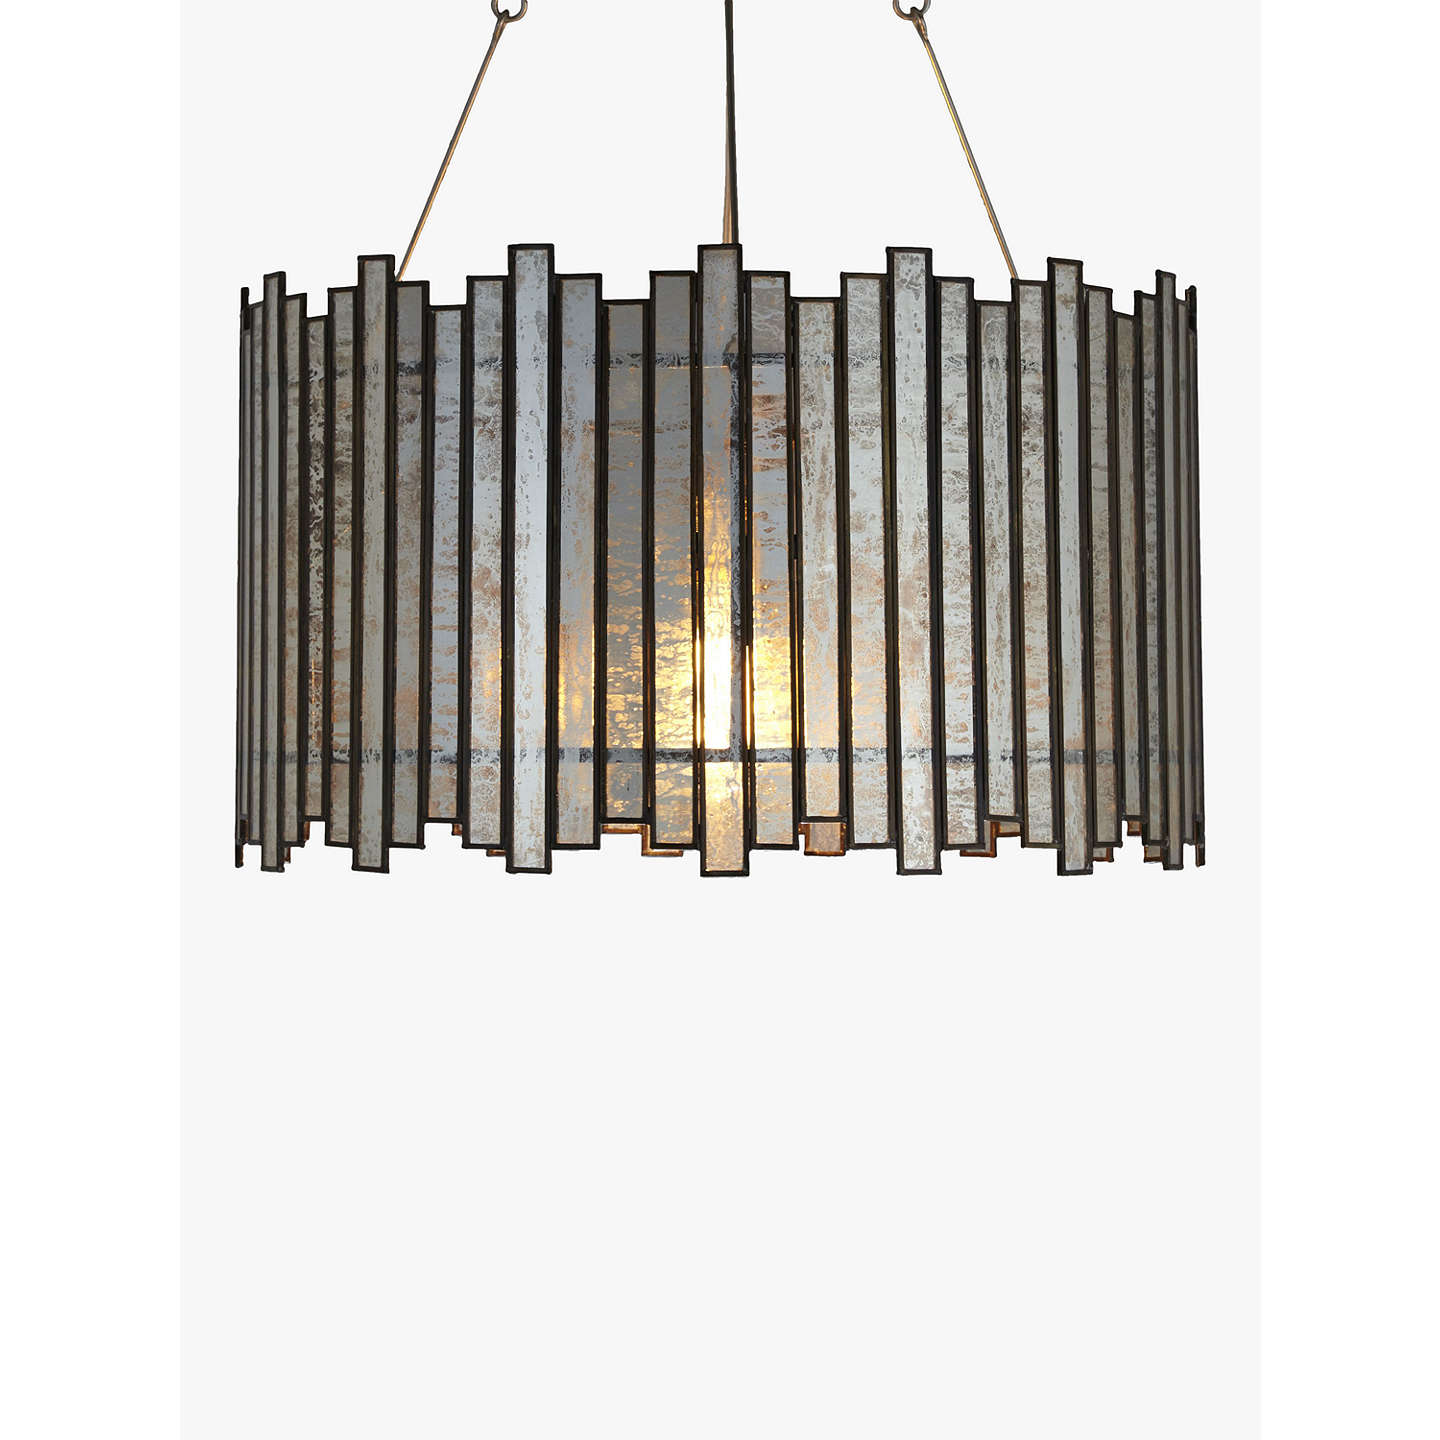 John lewis pandora glass strips pendant light at john lewis buyjohn lewis pandora glass strips pendant light online at johnlewis mozeypictures Image collections